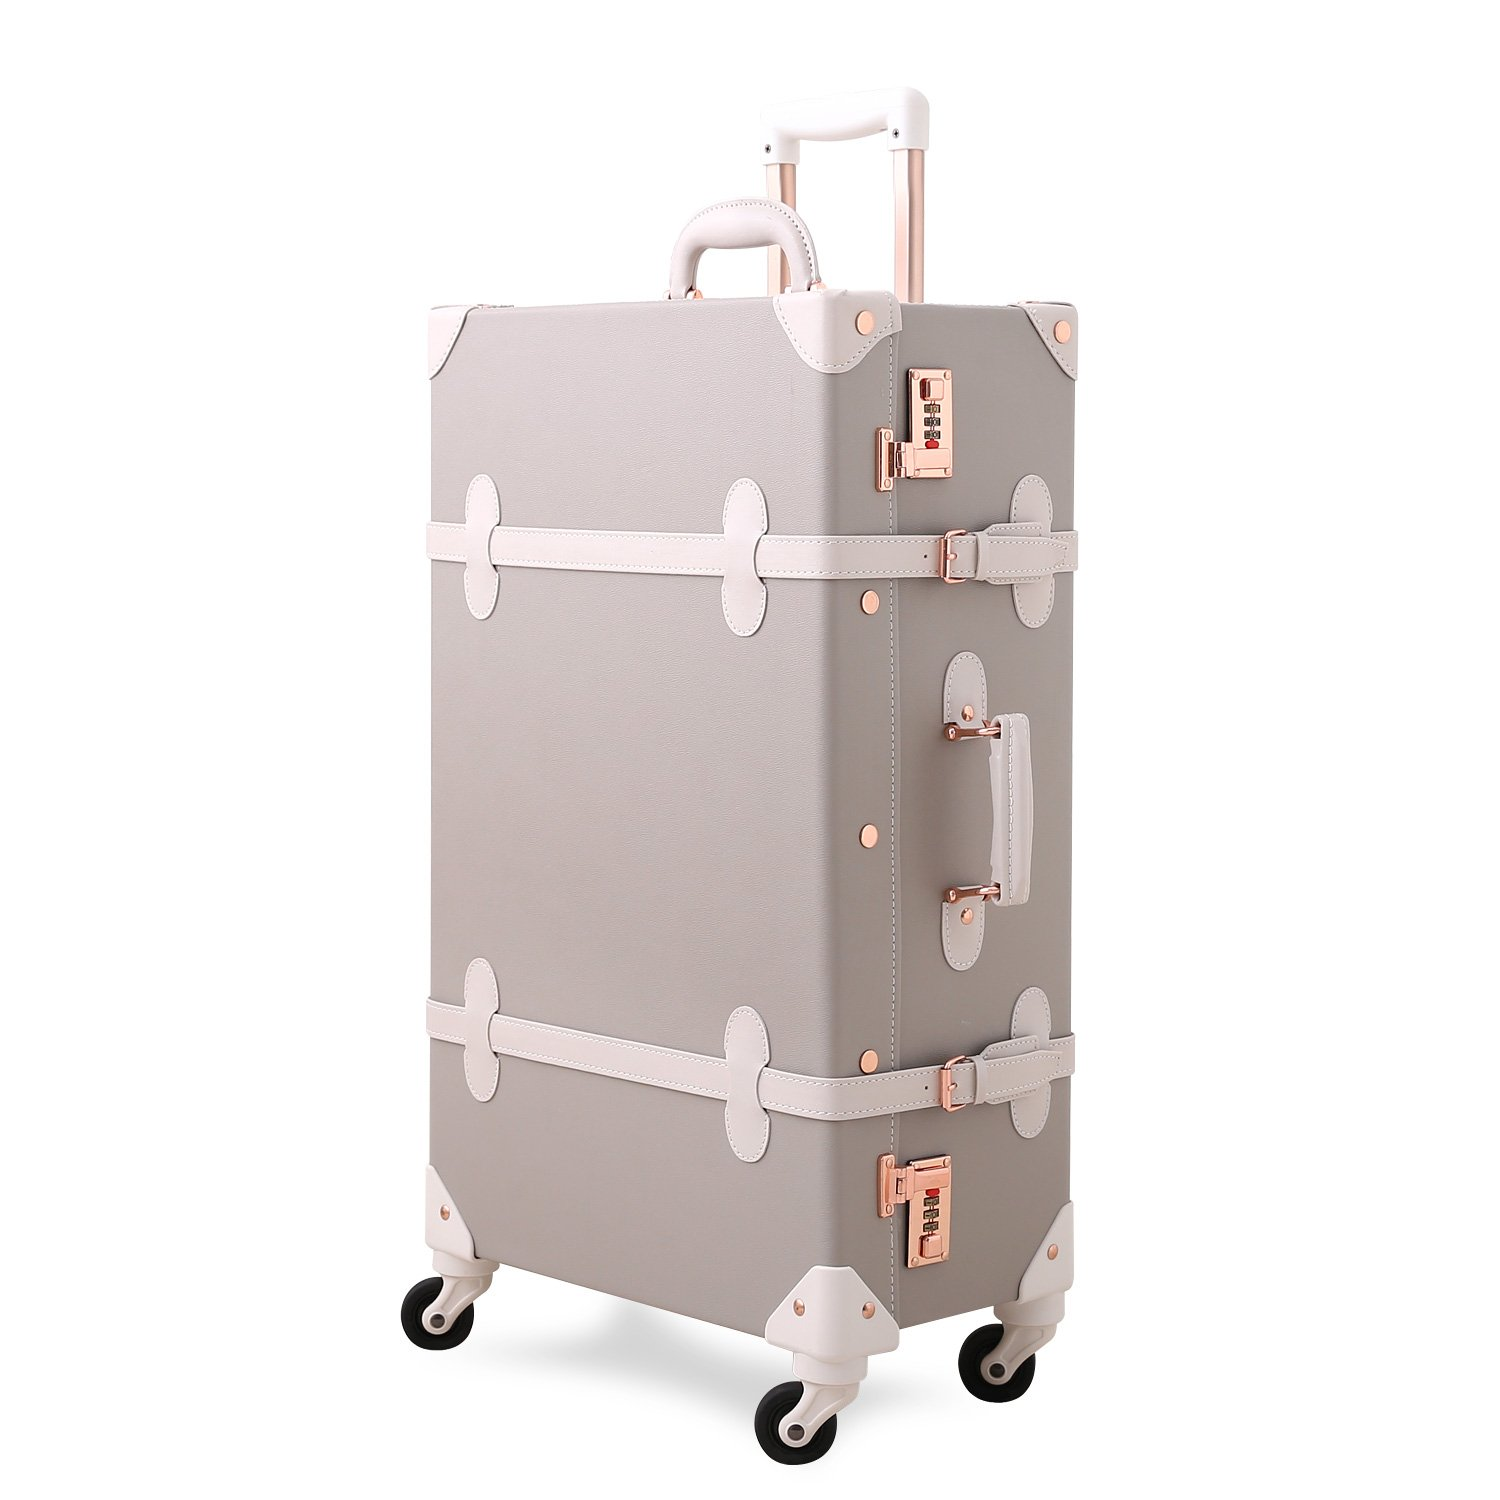 Unitravel Luggage Spinner Wheels Vintage Suitcase Travel PU Trunk Lightweight CA-6050-Ivory-20